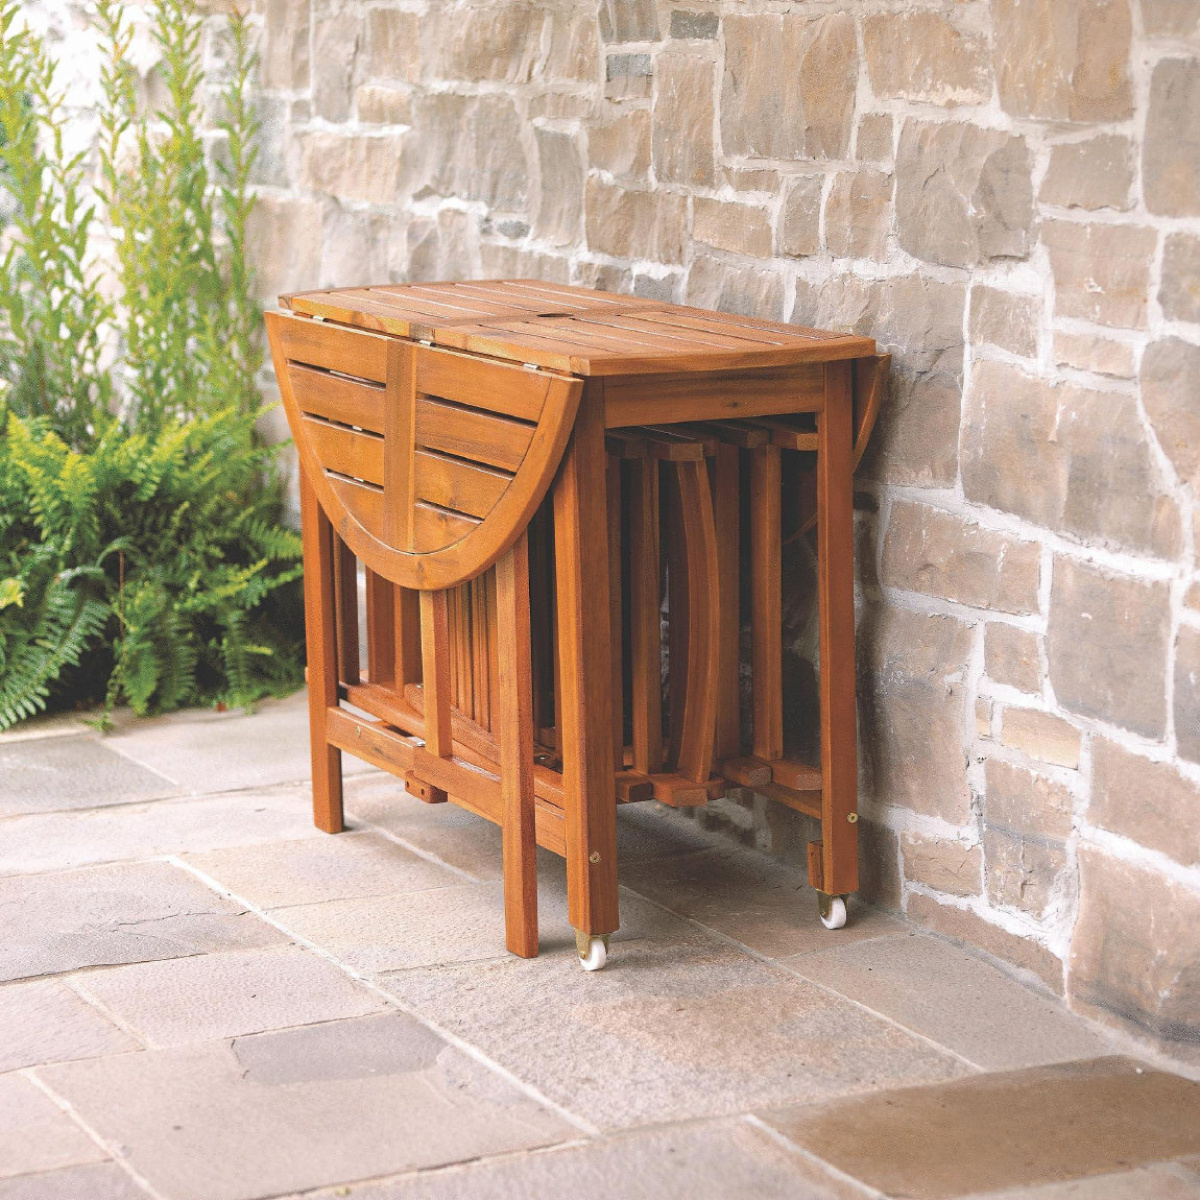 Folding Chairs Canadian Tire Folding Patio Table Canadian Tire Patio Furniture Ideas